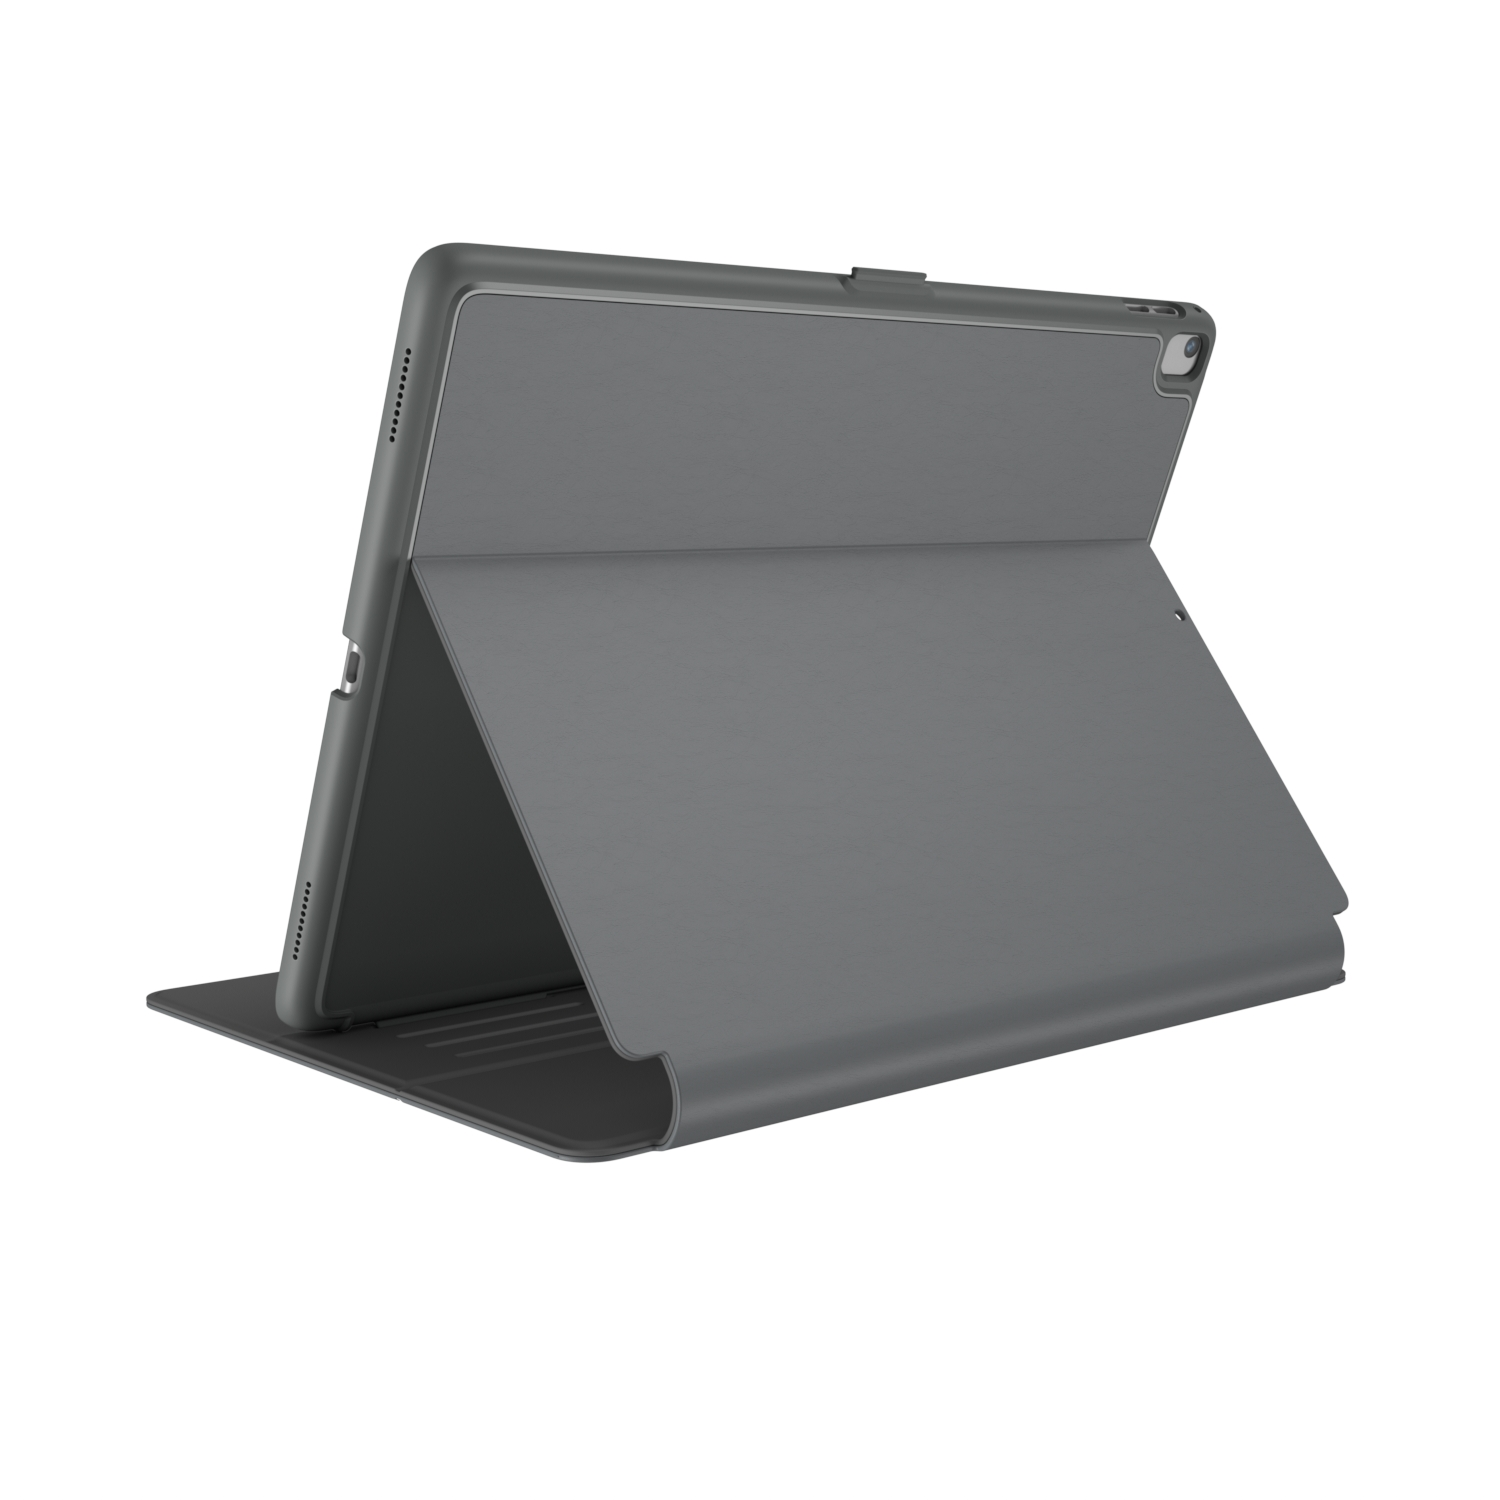 Compare prices for Speck Balance FOLIO 10.5 inch iPad Pro Cases Stormy Grey/Charcoal Grey